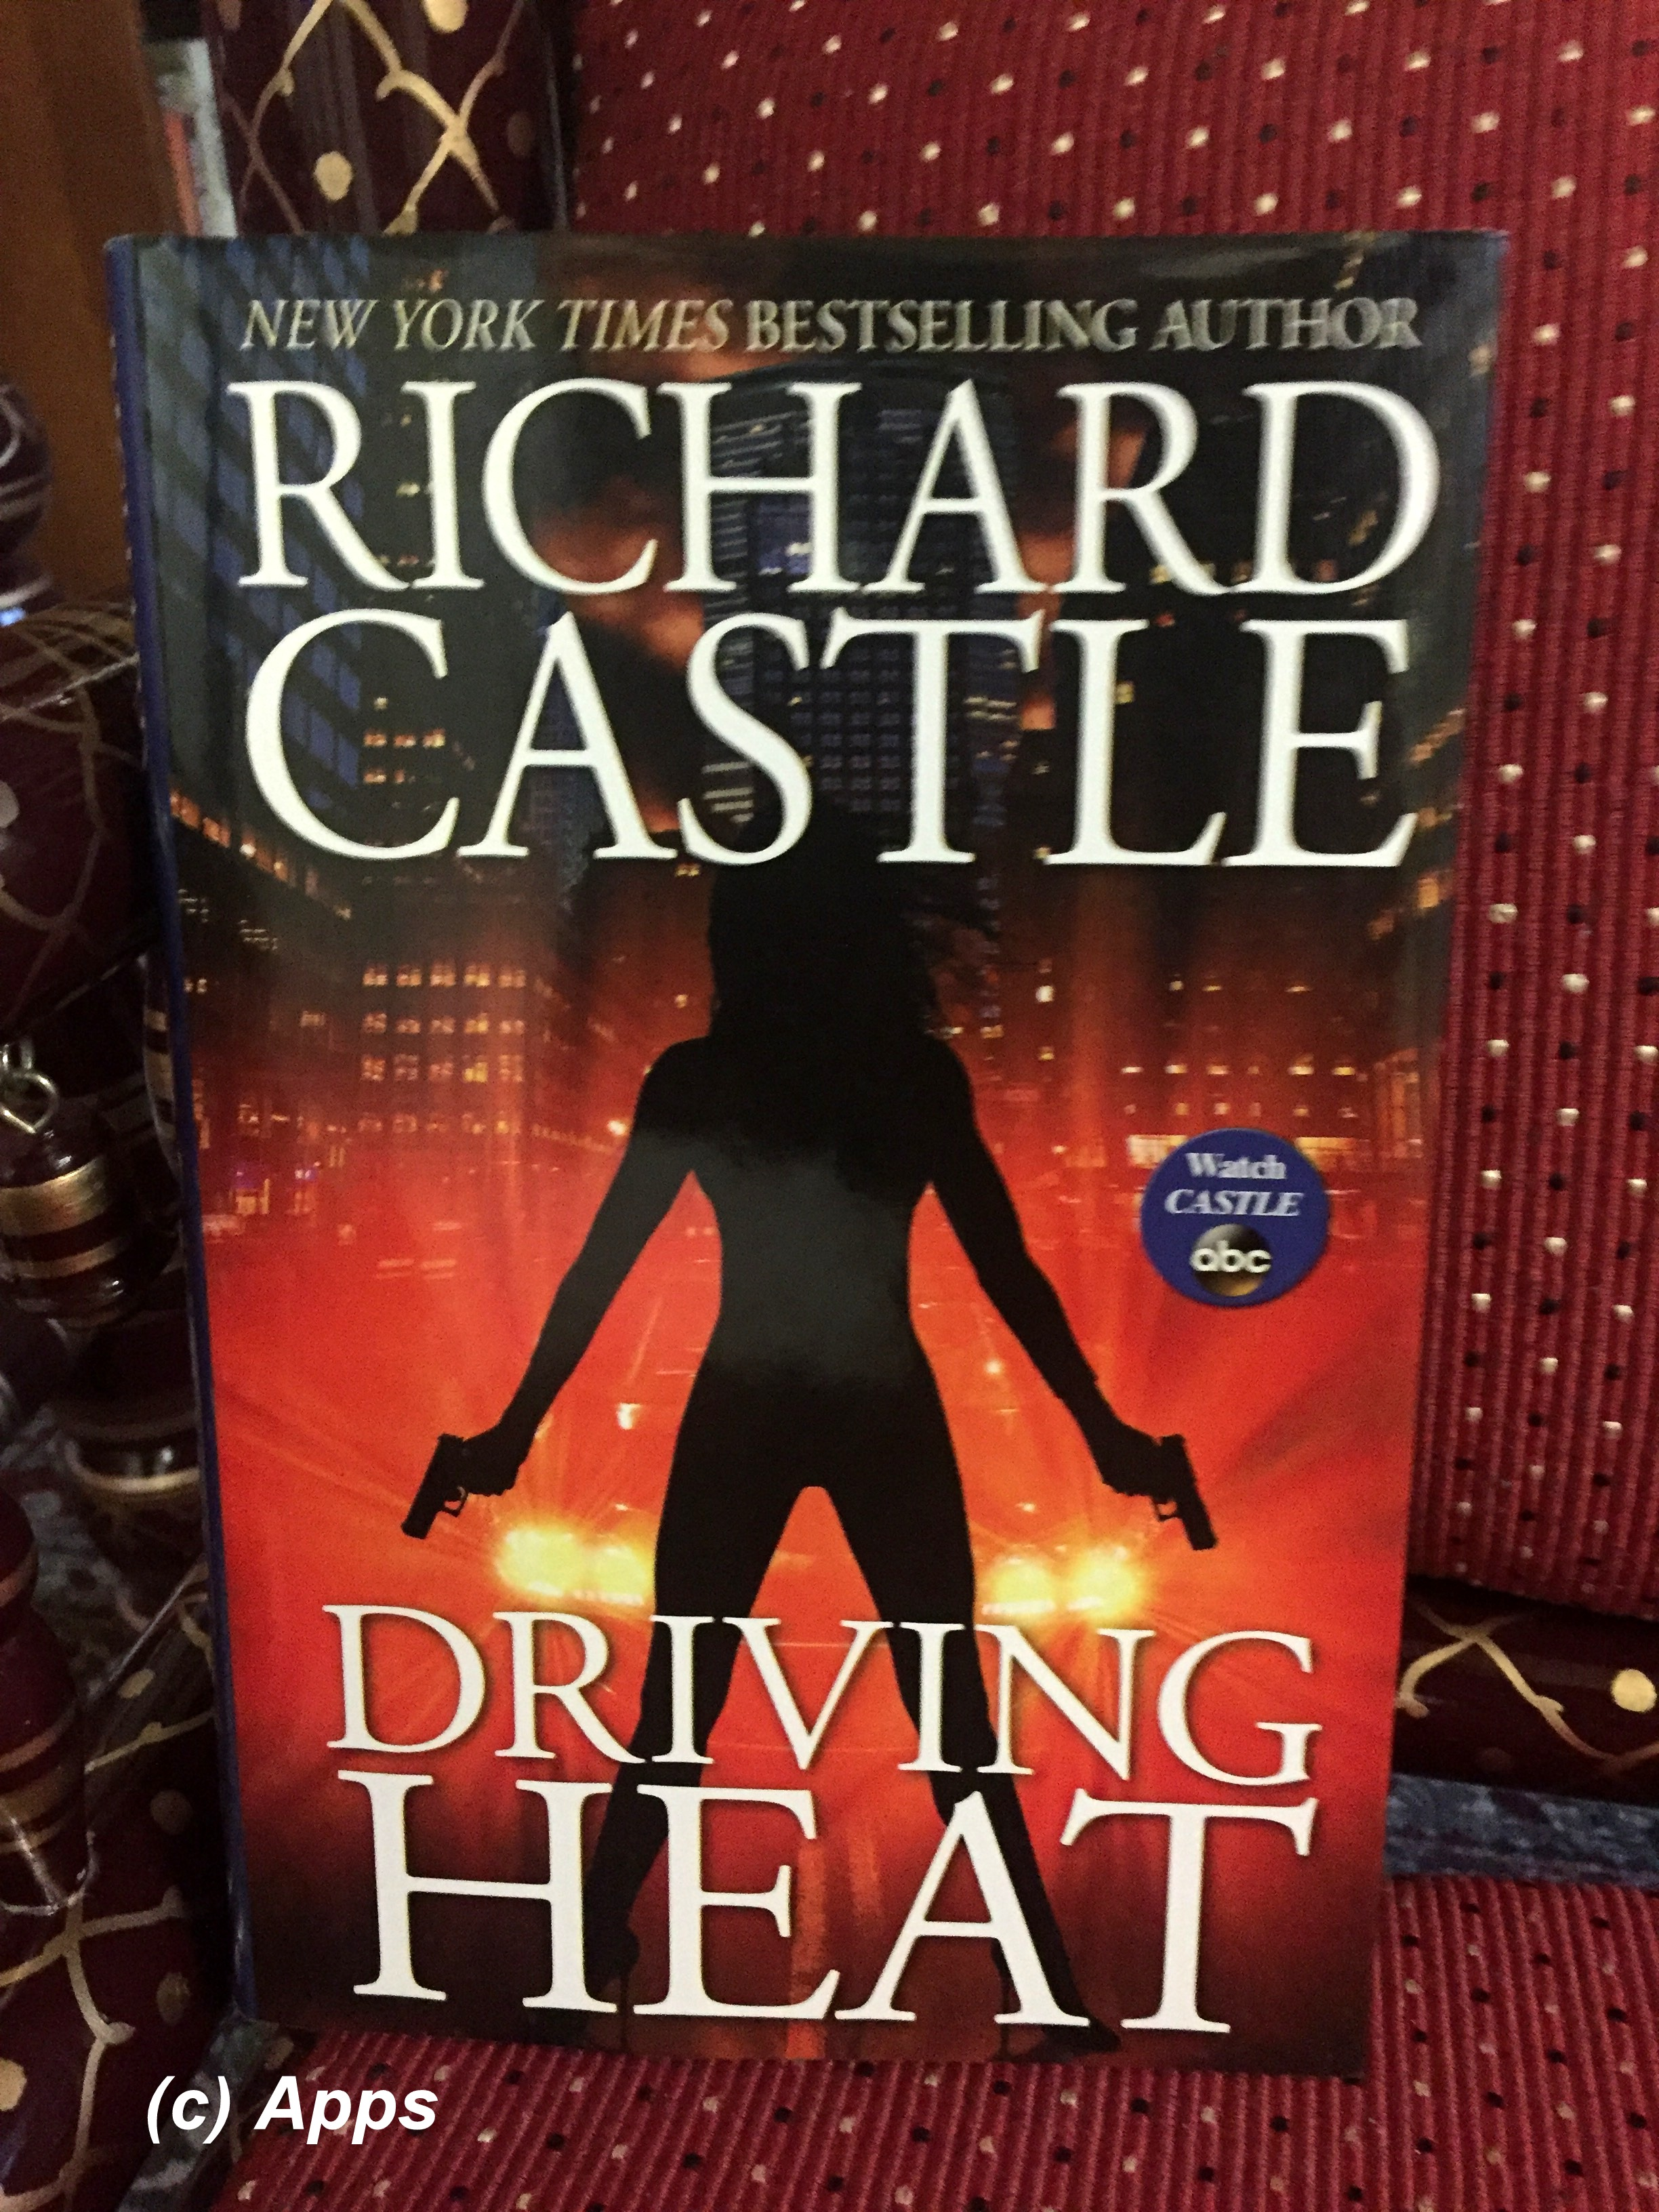 Richard Castle Intensifies The Plot Again By Creating Relationship Strains Between Nikki Heat And Jameson Rook With This However Time Around